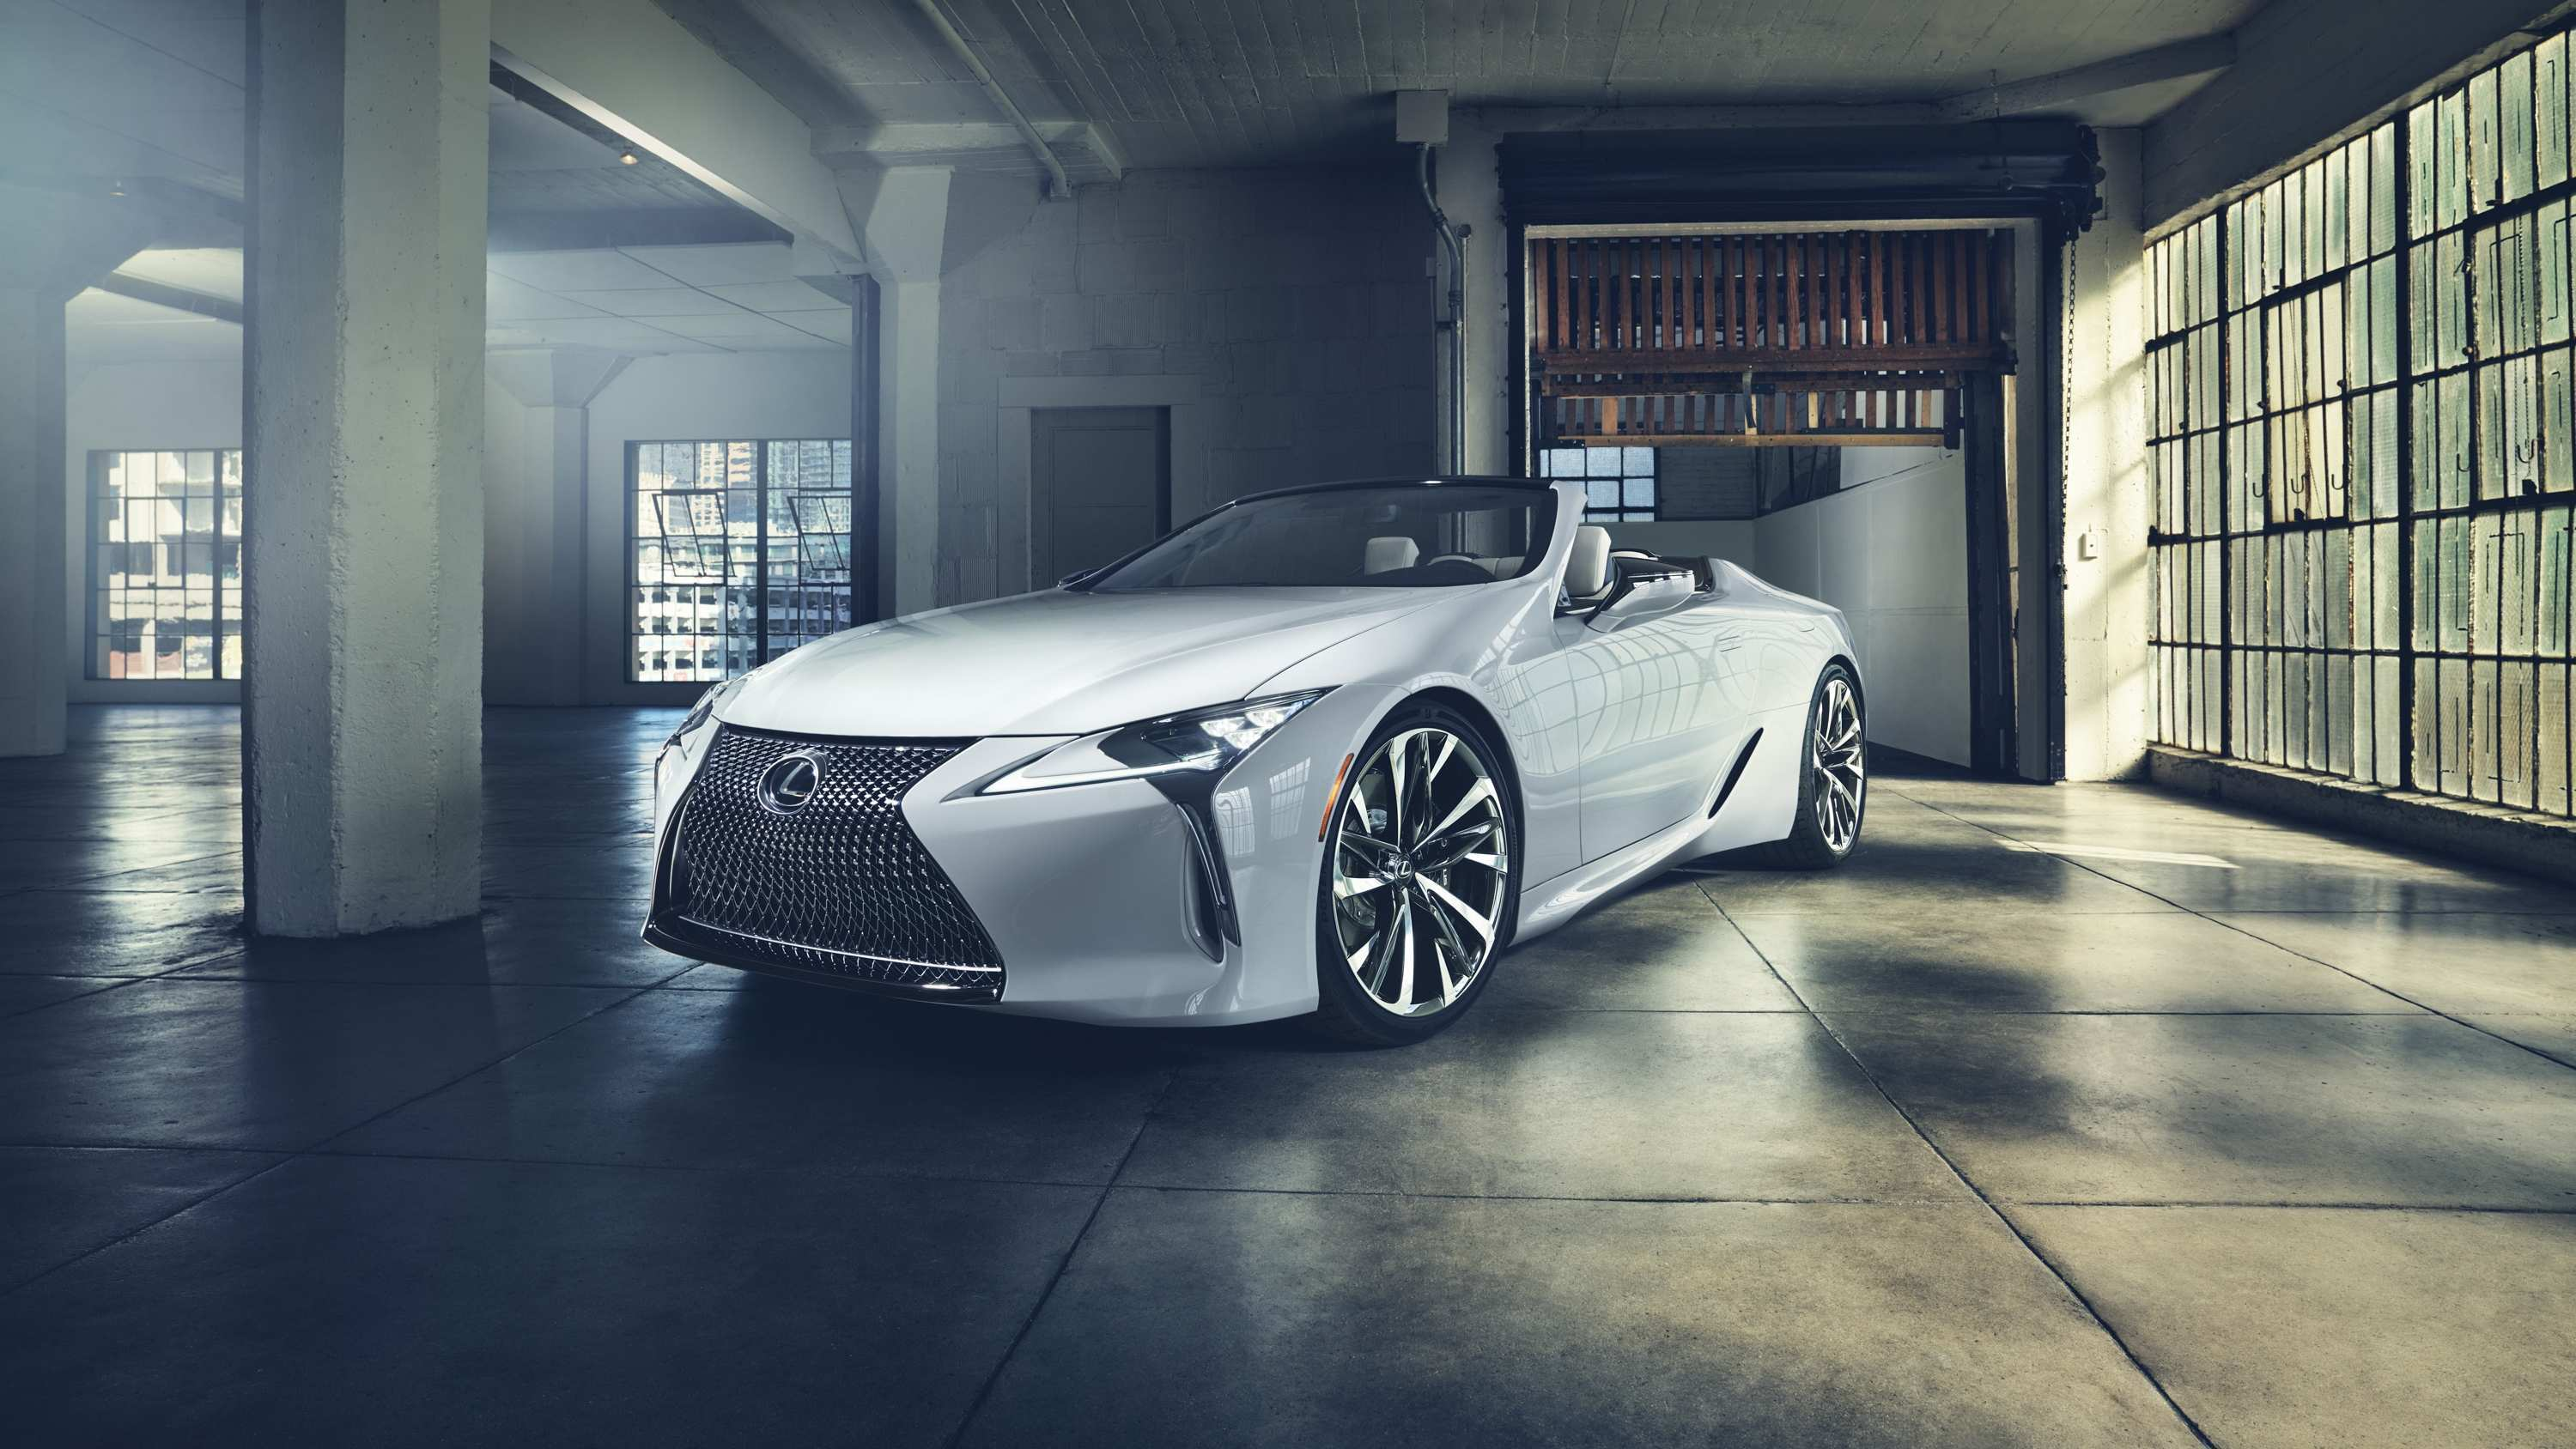 55 New 2019 Lexus Convertible Review for 2019 Lexus Convertible